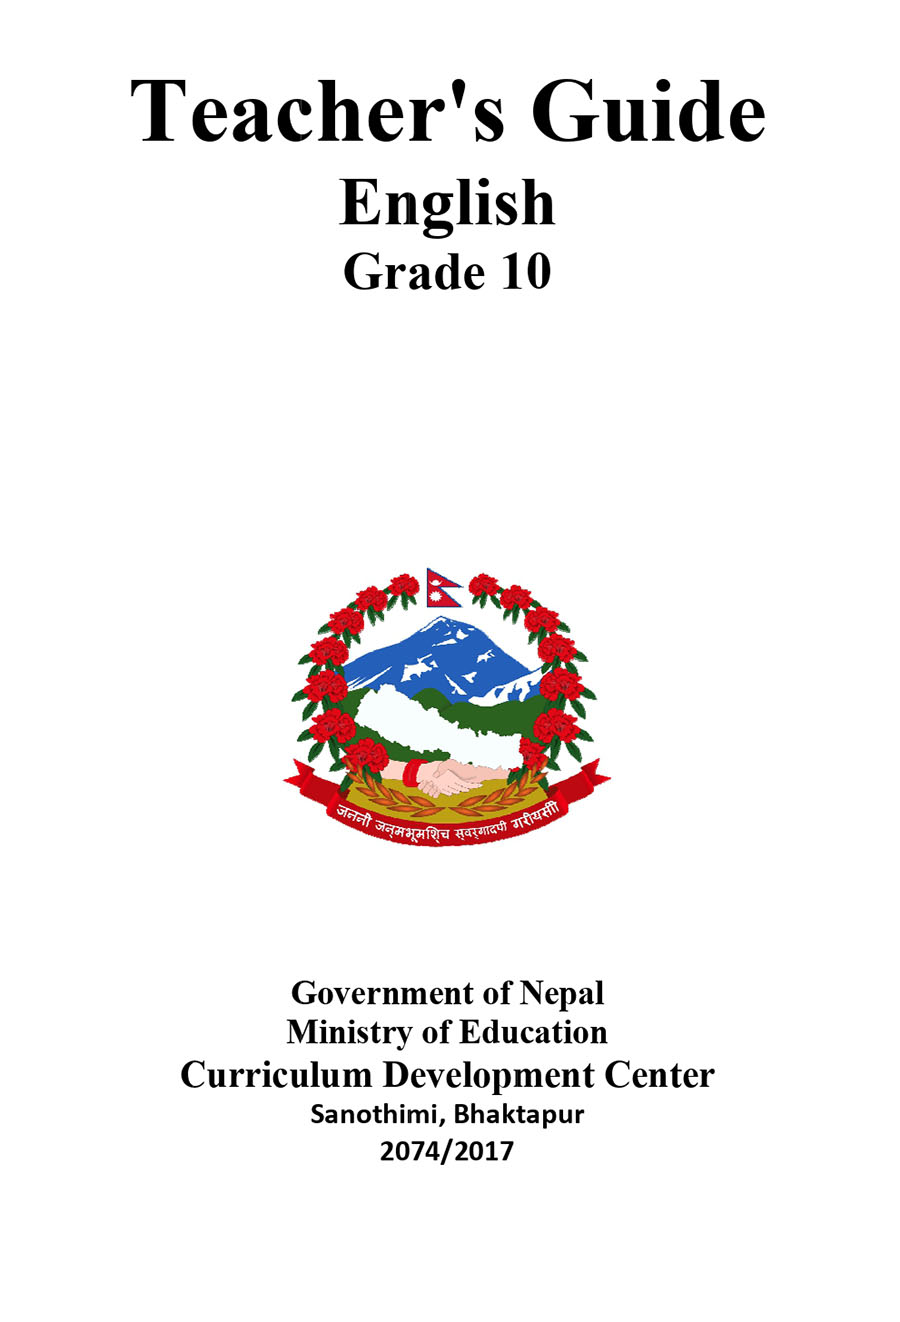 Teachers-Guide-Book-of-English-Subject-Grade-10-SEE-Download-in-PDF